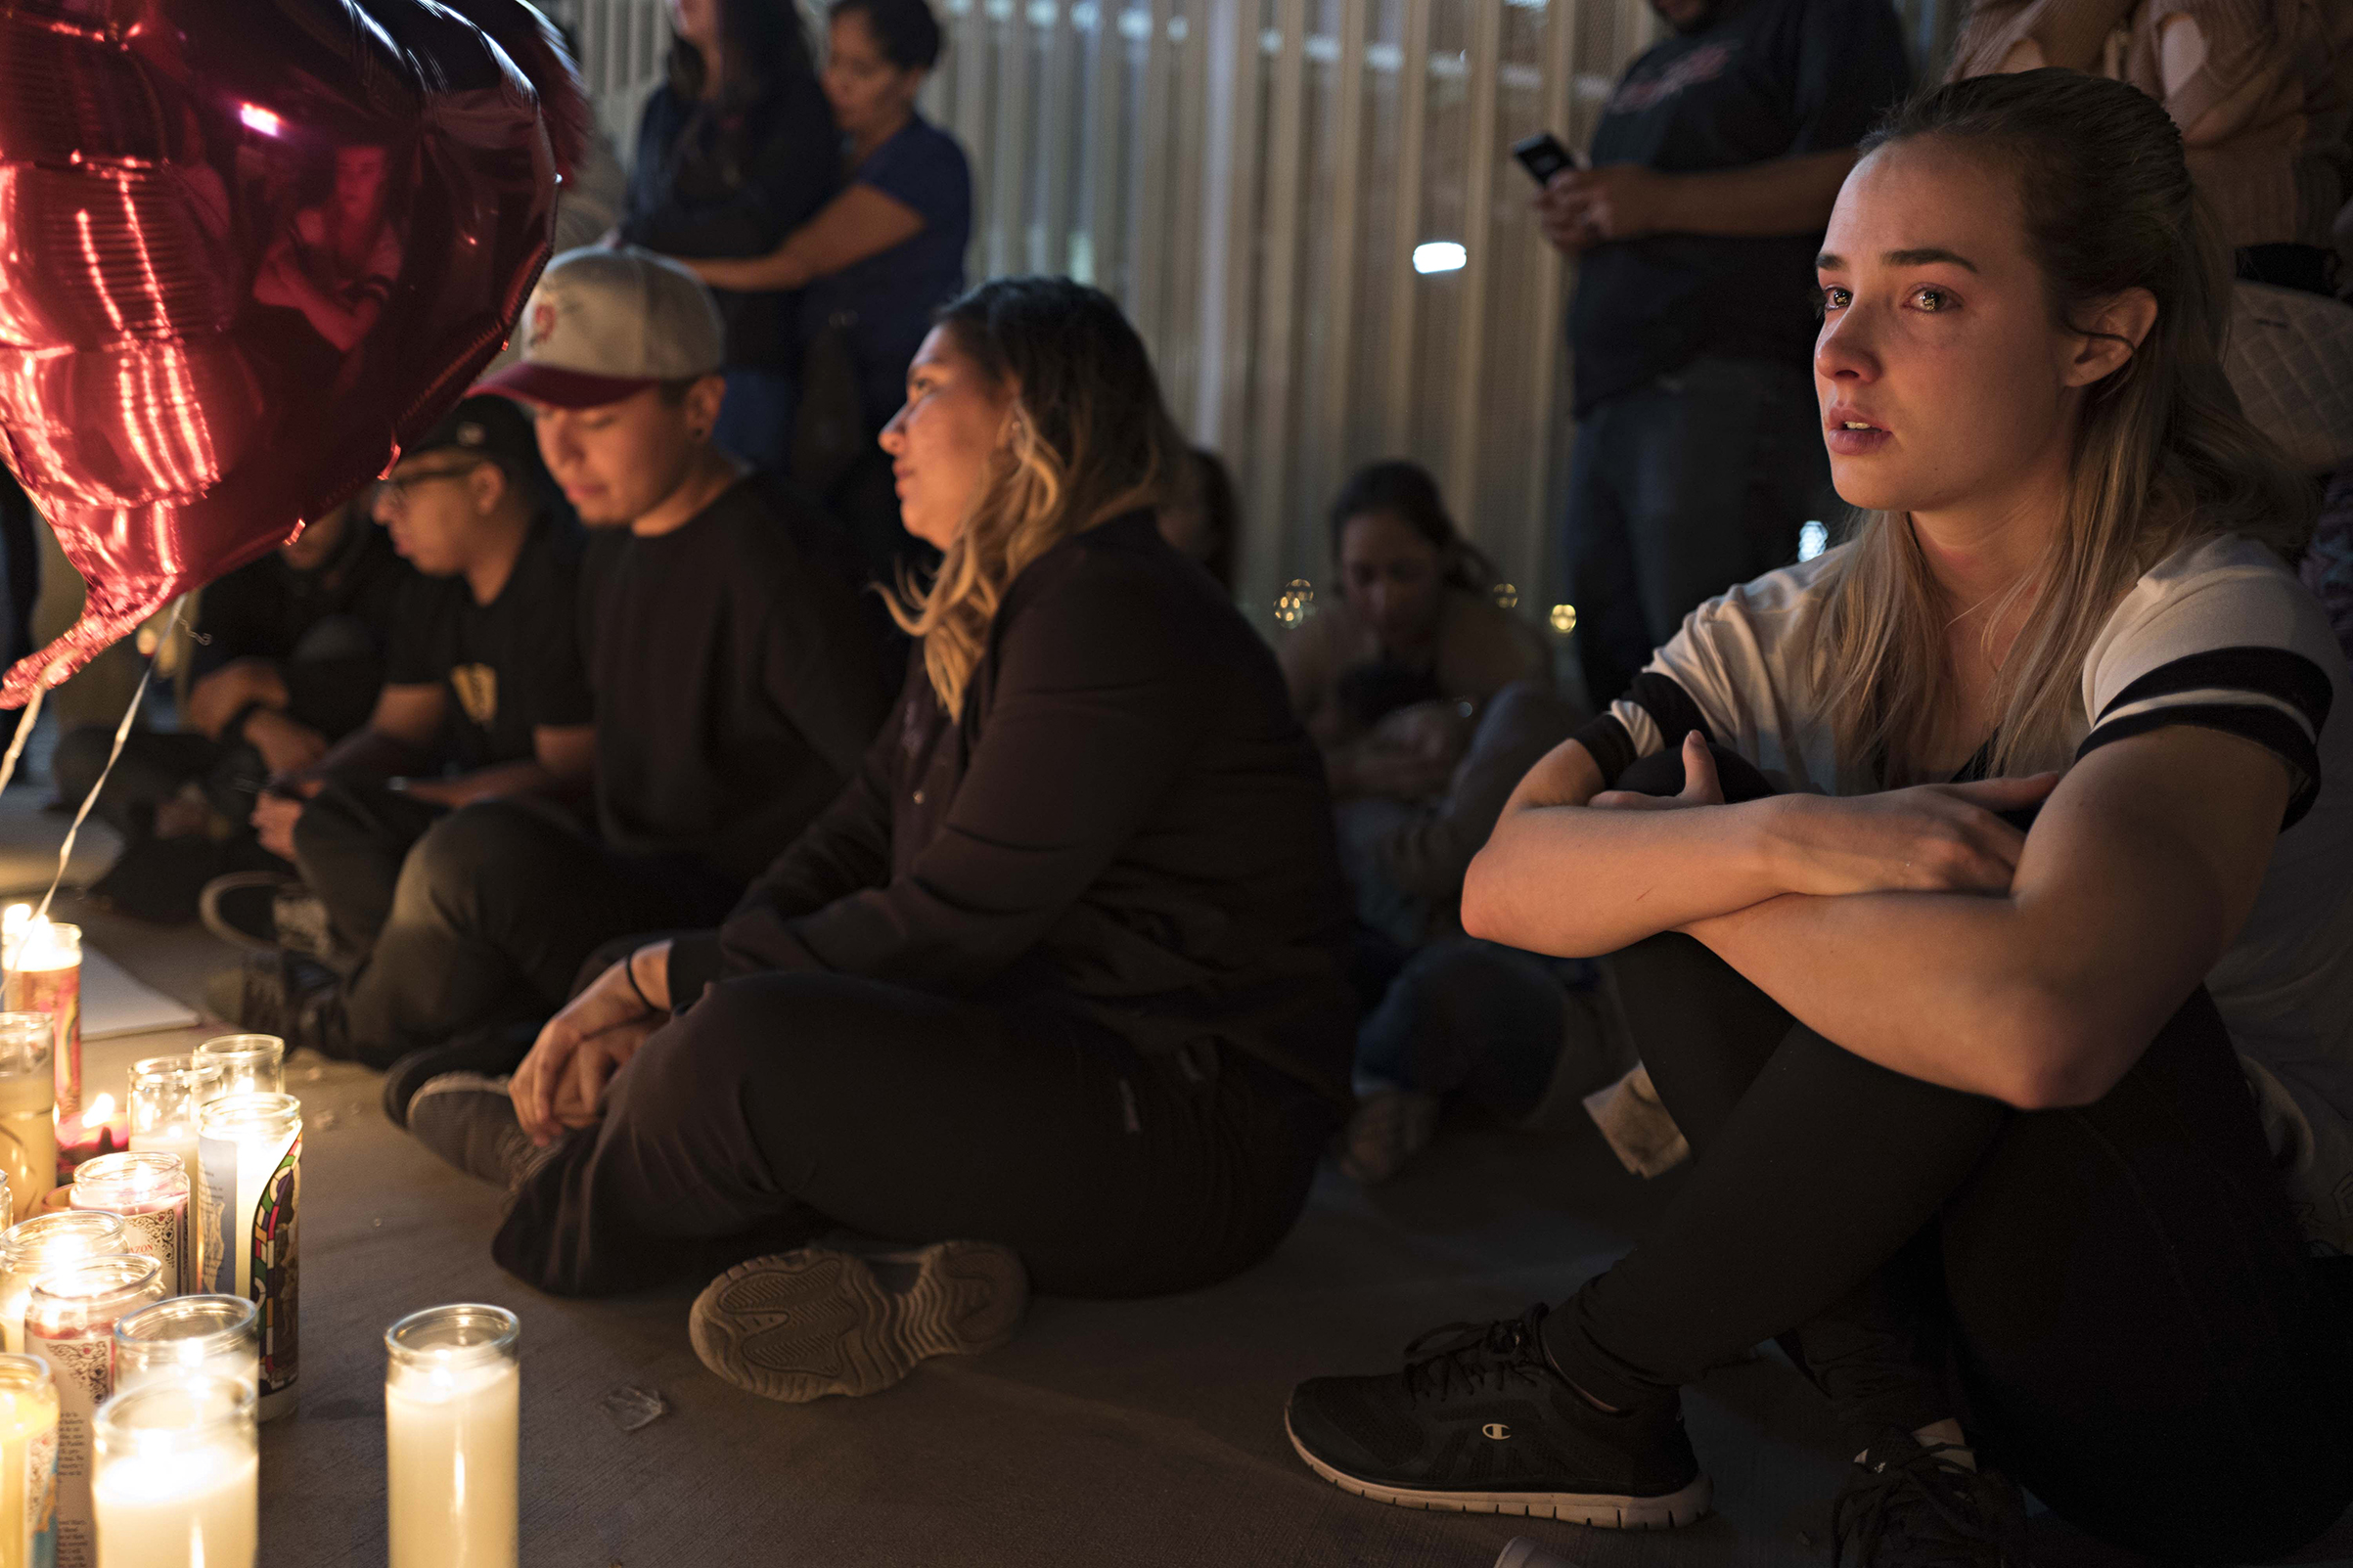 A street vigil held for victims of Sunday's mass shooting, at a main intersection on Las Vegas Boulevard on Oct. 2, 2017.